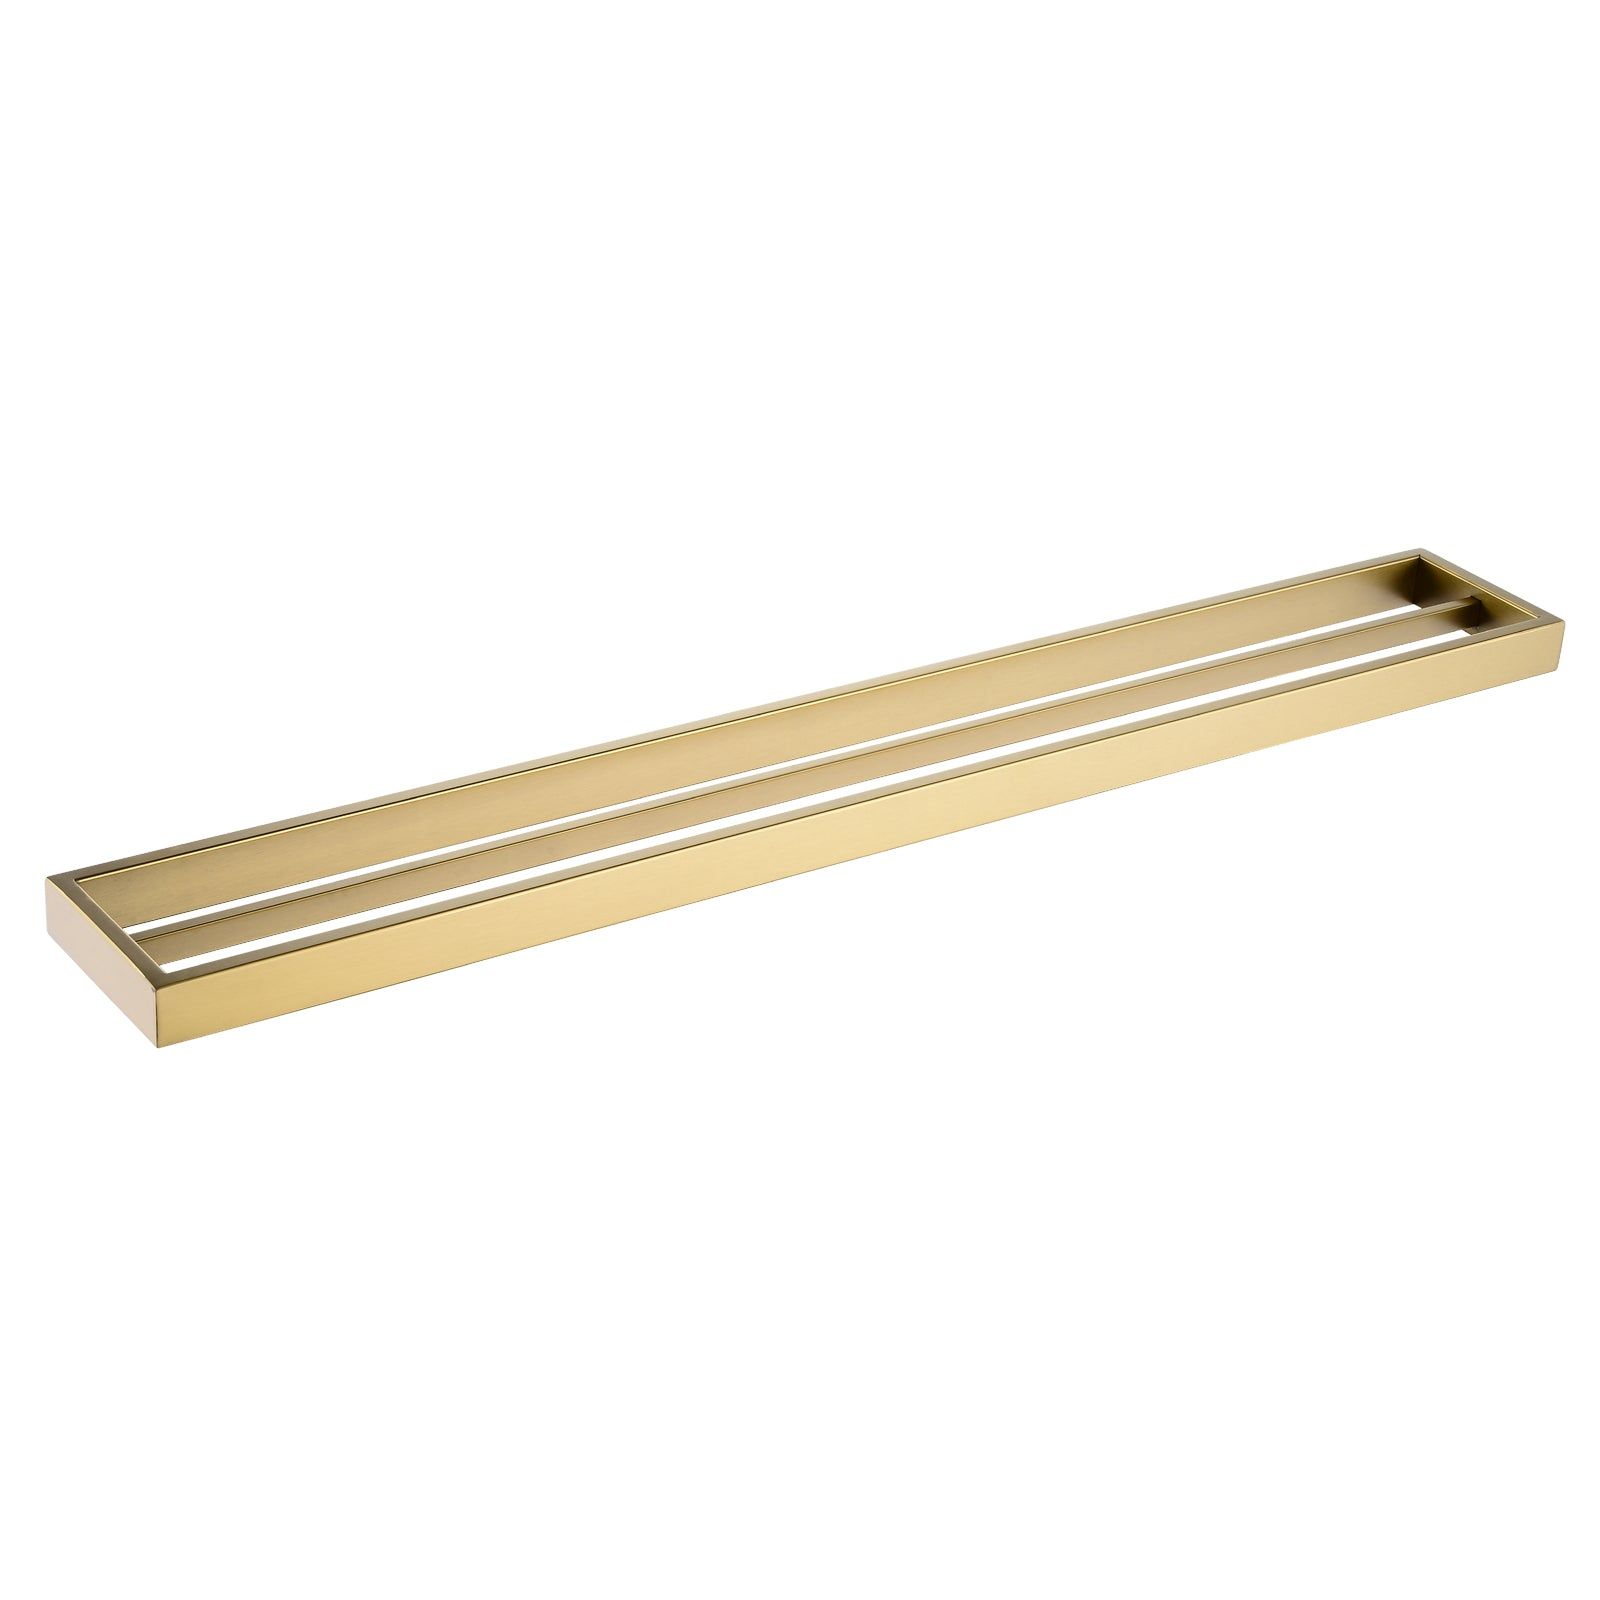 Cavallo Brushed Yellow Gold Square Double Towel Rail 800mm